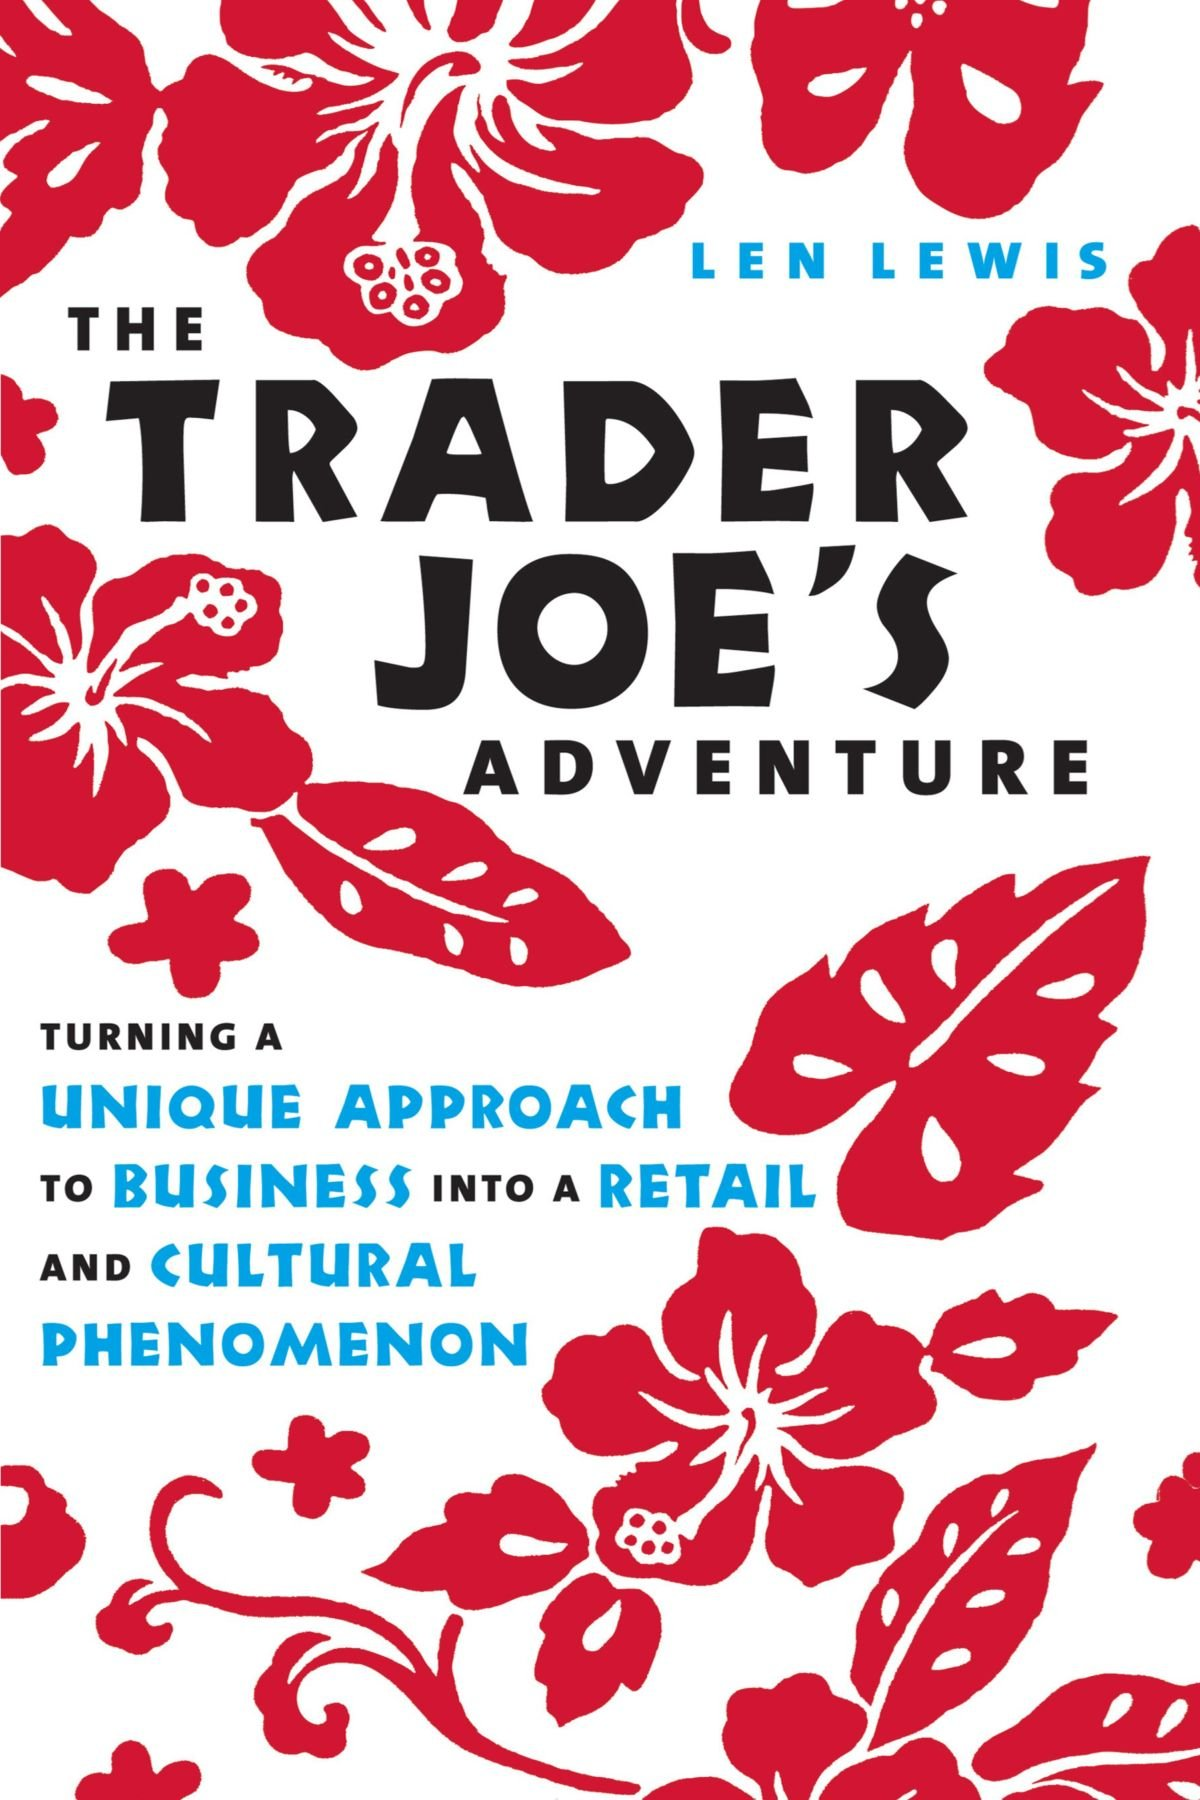 The trader joes adventure turning a unique approach to business the trader joes adventure turning a unique approach to business into a retail and cultural phenomenon len lewis 9781609780012 amazon books fandeluxe Images